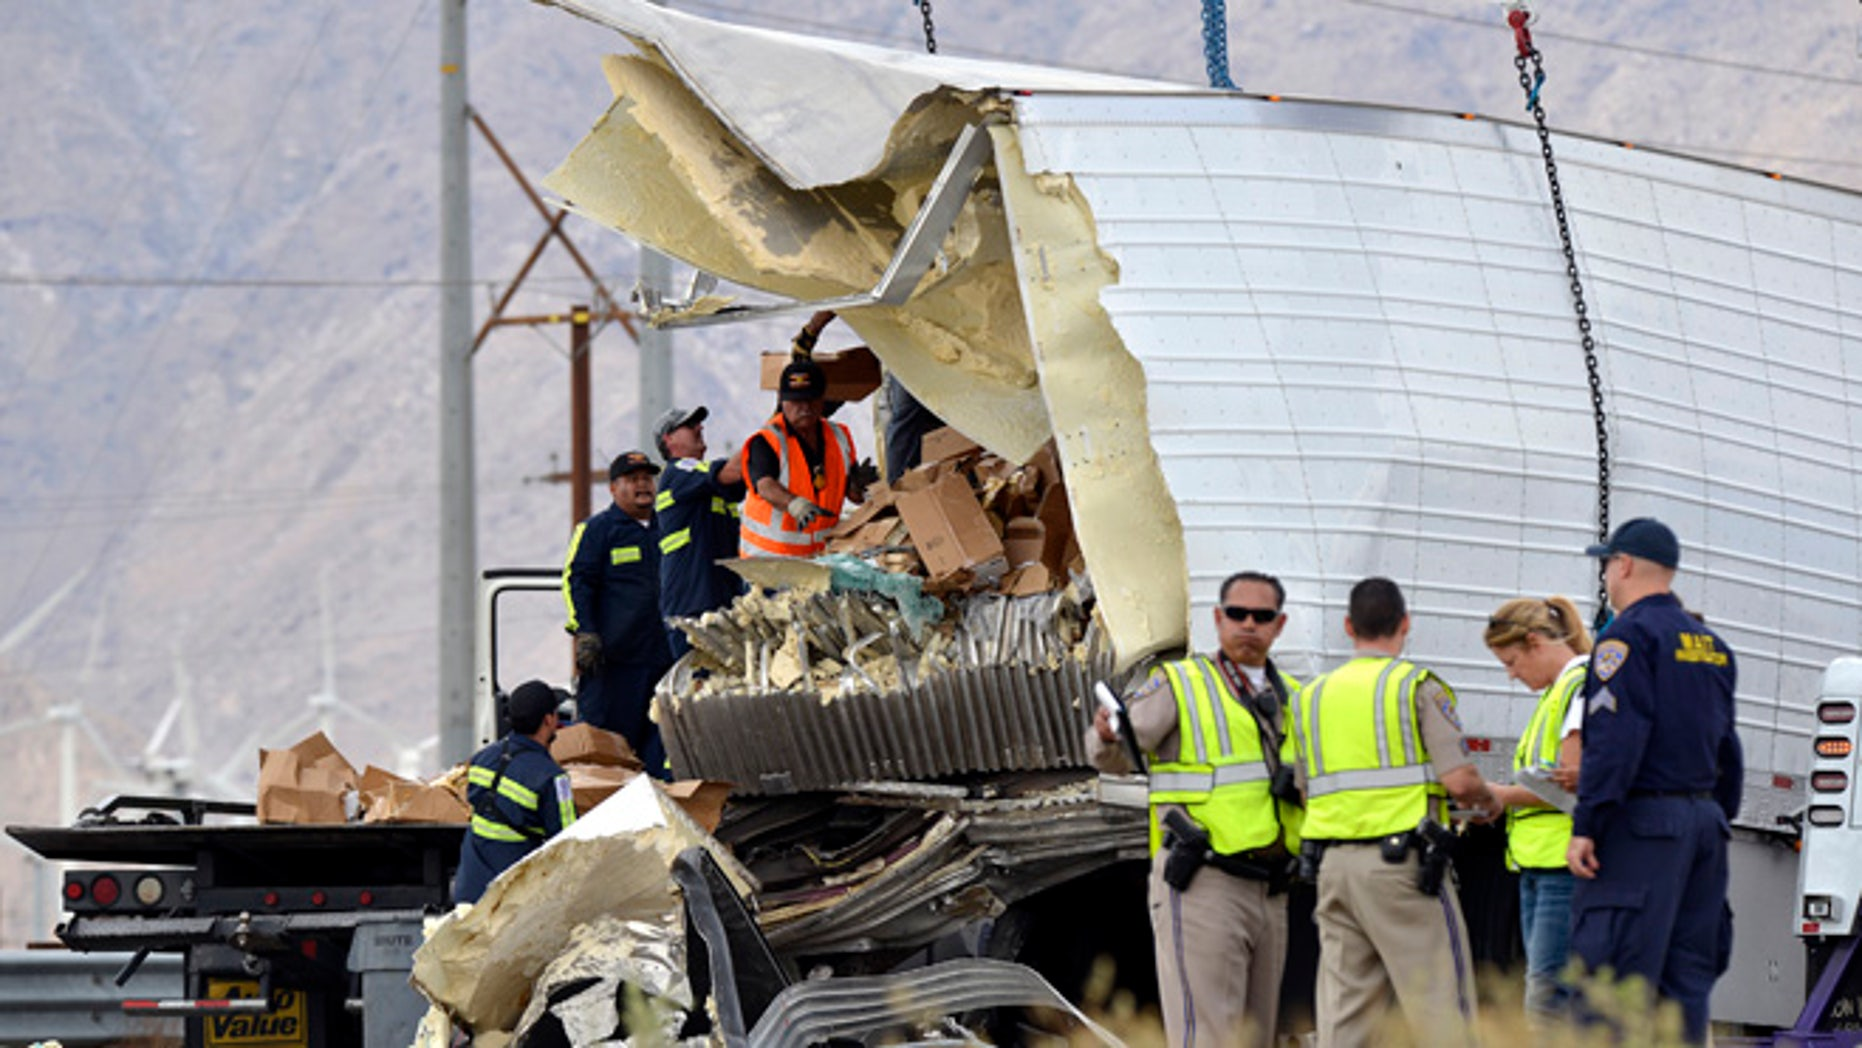 Workers remove debris from a semi-truck that crashed with a tour bus near Palm Springs, Calif., Sunday, Oct. 23, 2016.